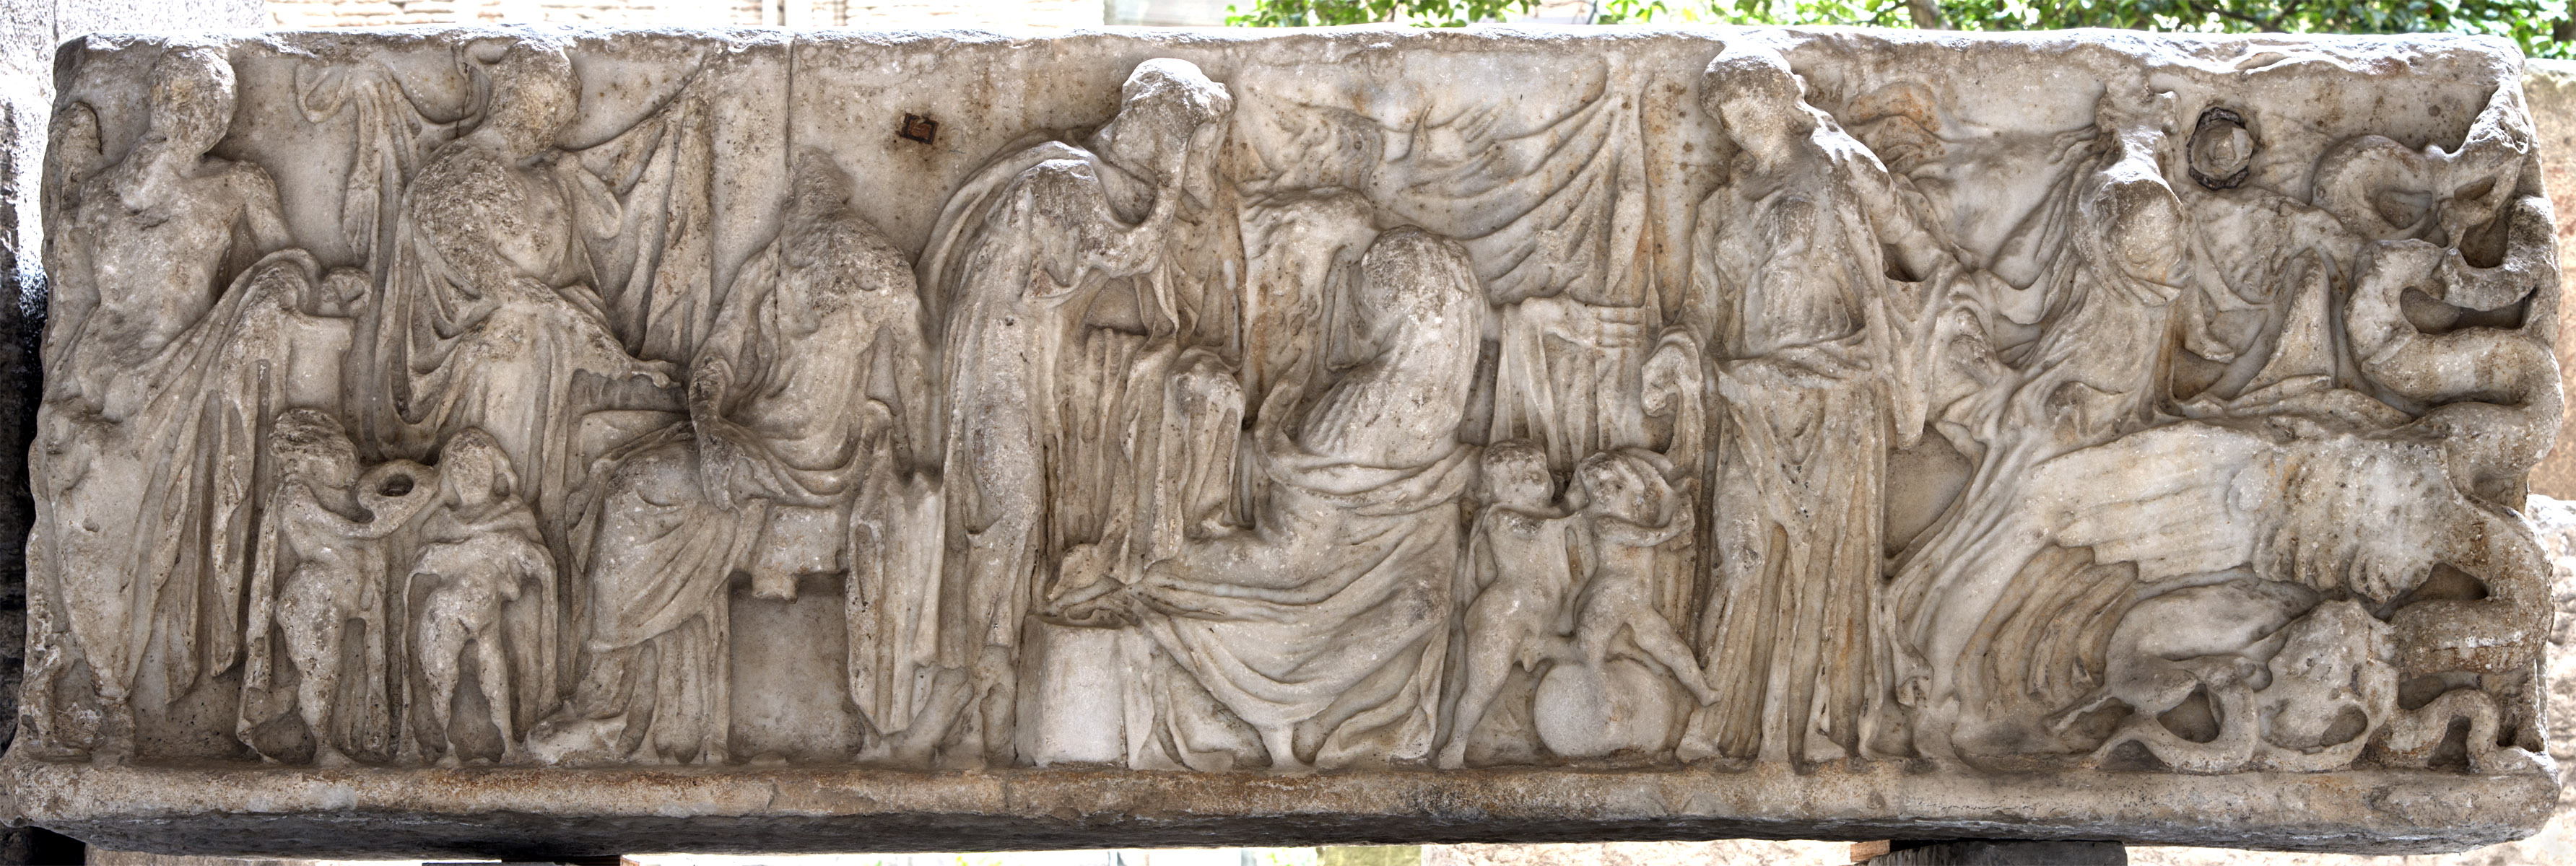 Scenes of the myth of Medea. Front panel of sarcophagus. Luna marble. 2nd cent. CE.  Inv. No. 3257. Naples, National Archaeological Museum